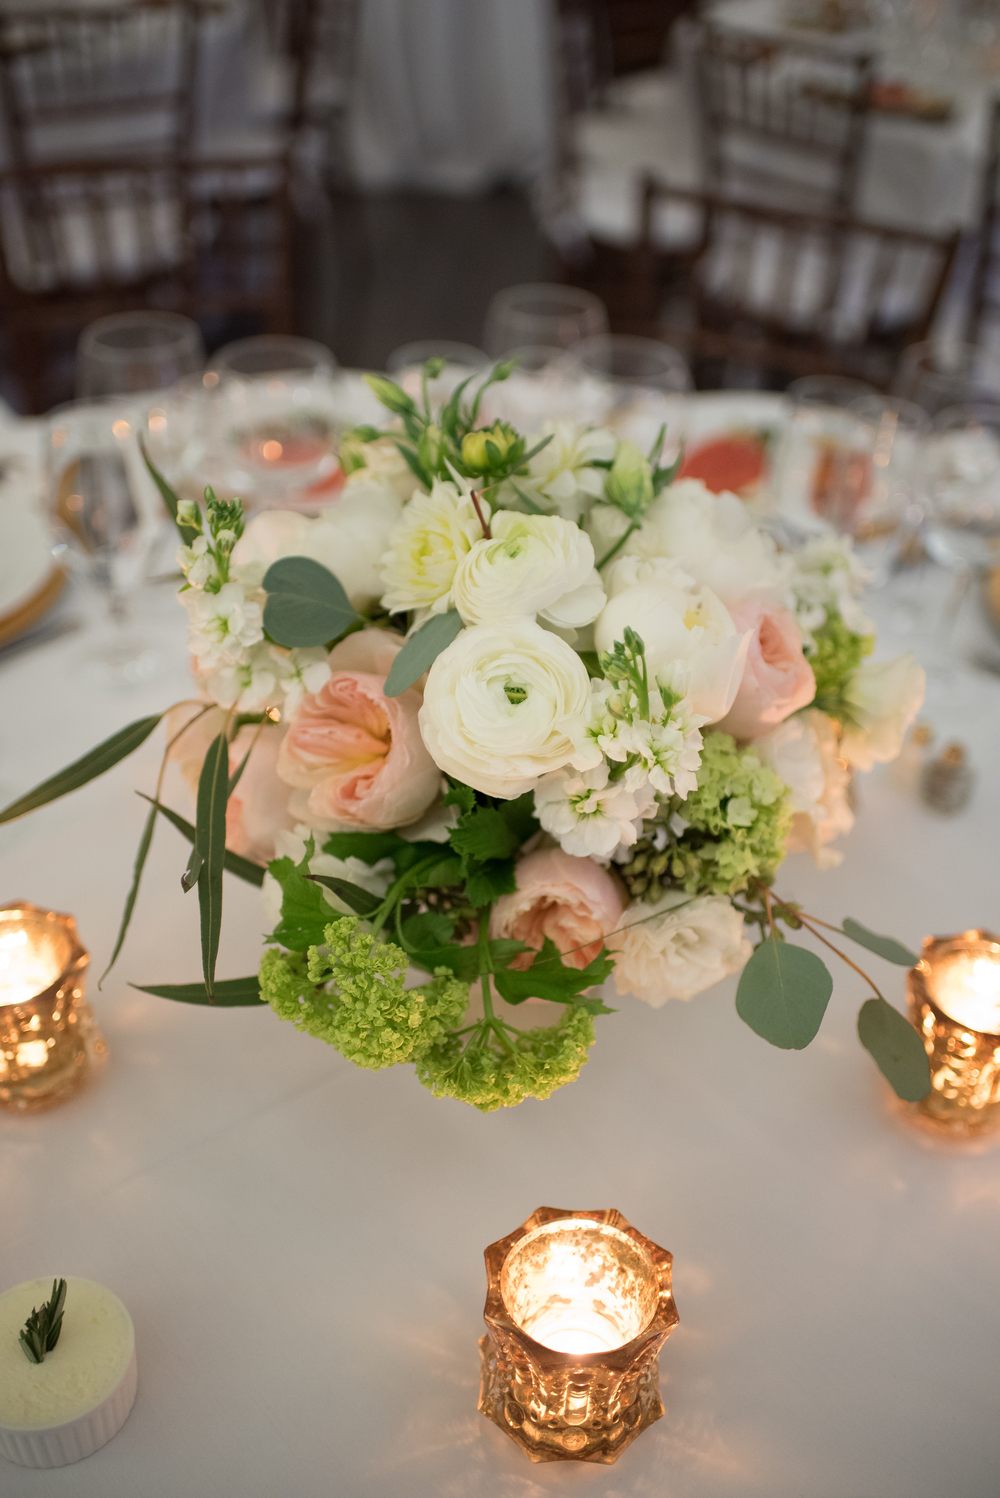 With the lower arrangements, we incorporated more green and peach aspects surrounded by beautiful candlelight.